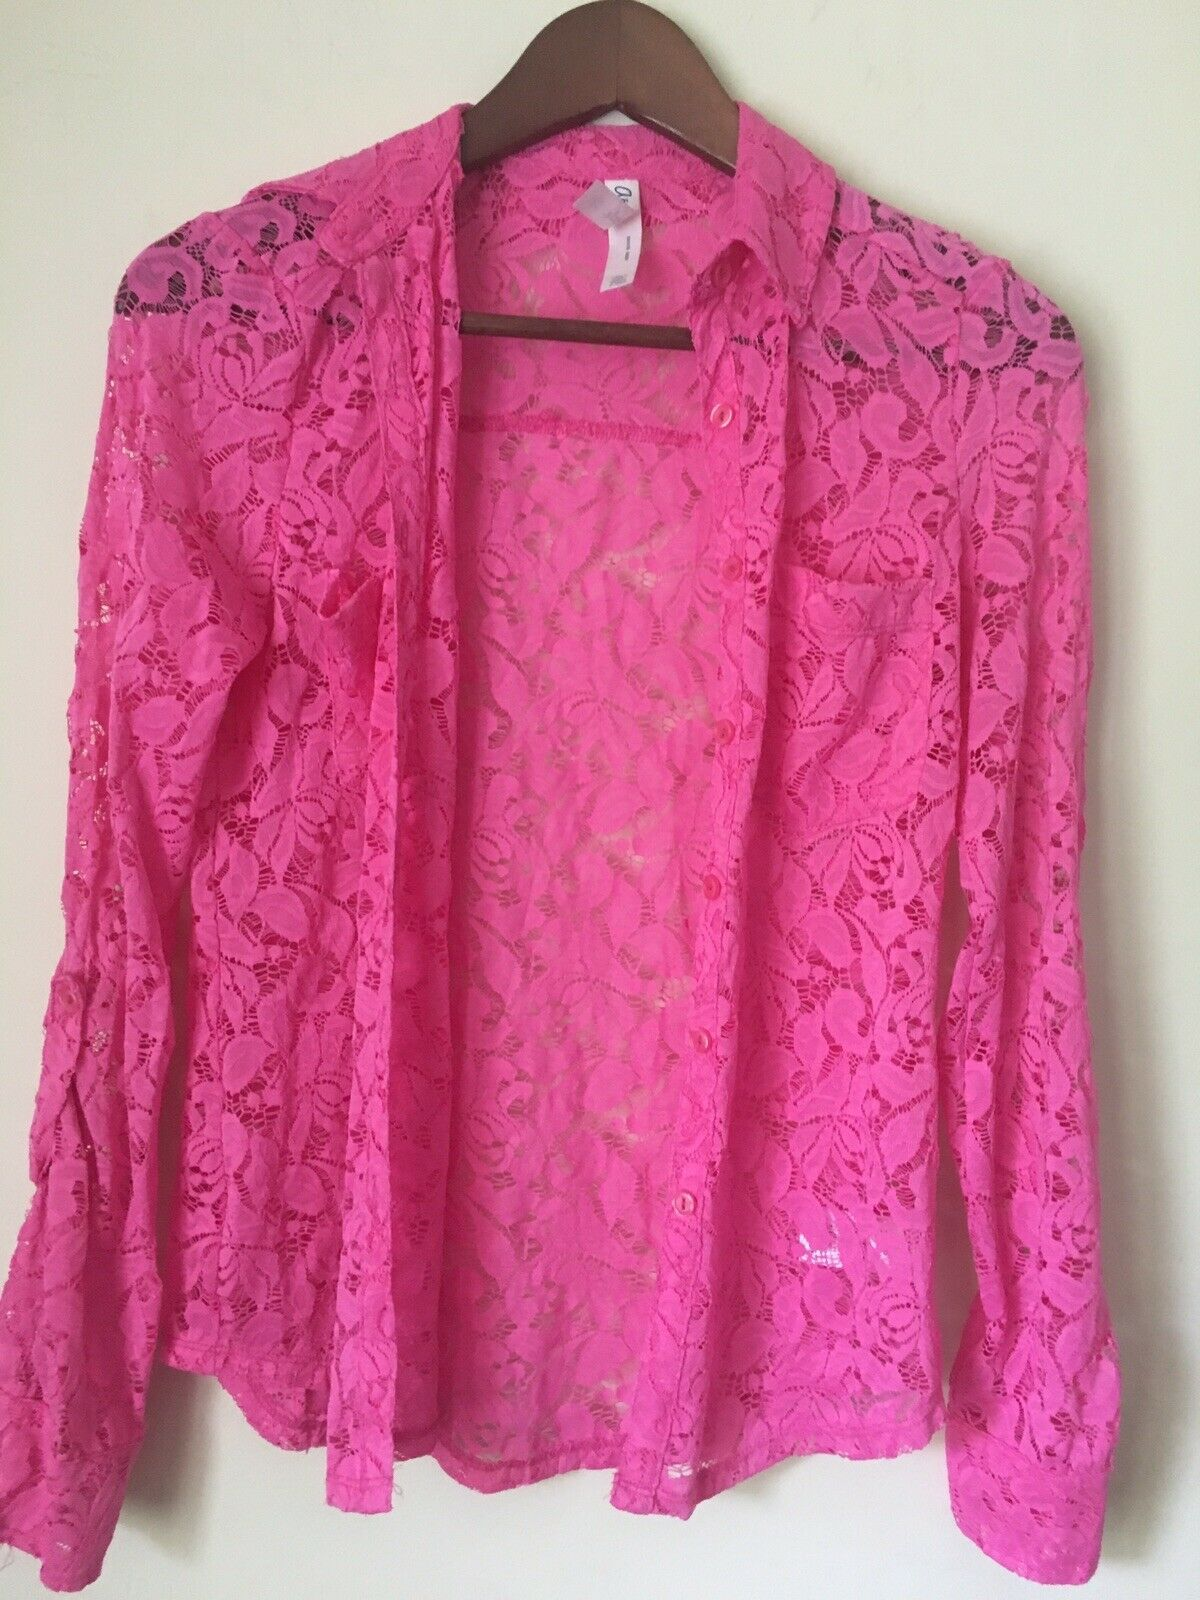 Primary image for Trendy AEROPOSTALE pink lace SWEATER / SHIRT. Size XS